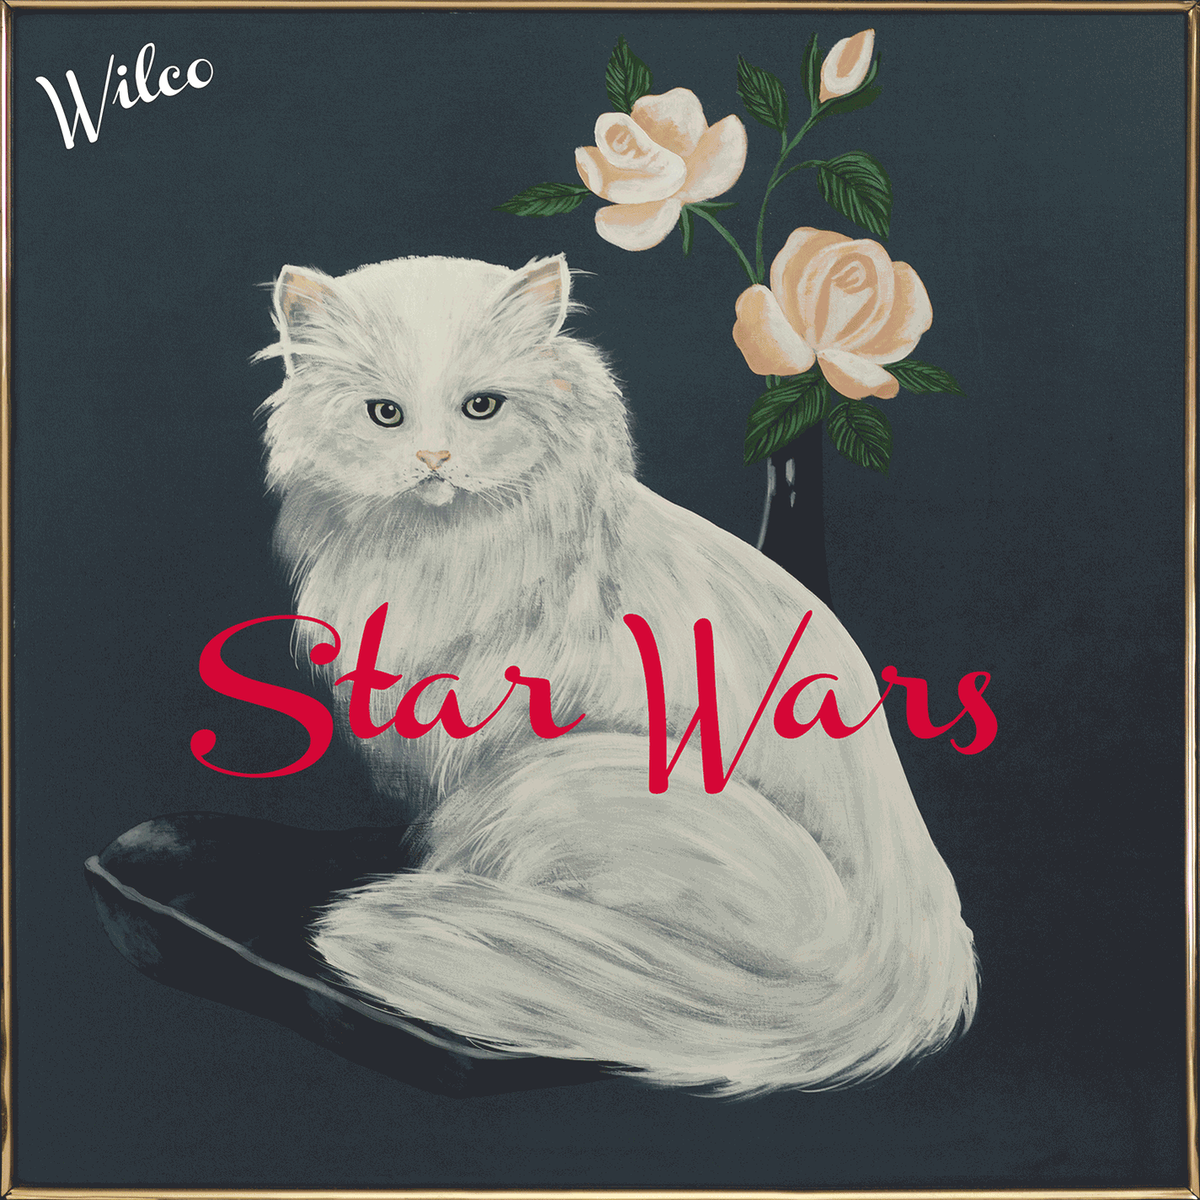 Star Wars: a new Wilco album featuring 11 original songs is available now. Free to download at http://t.co/fCTwKatIc4 http://t.co/qZBKXOJ6WE